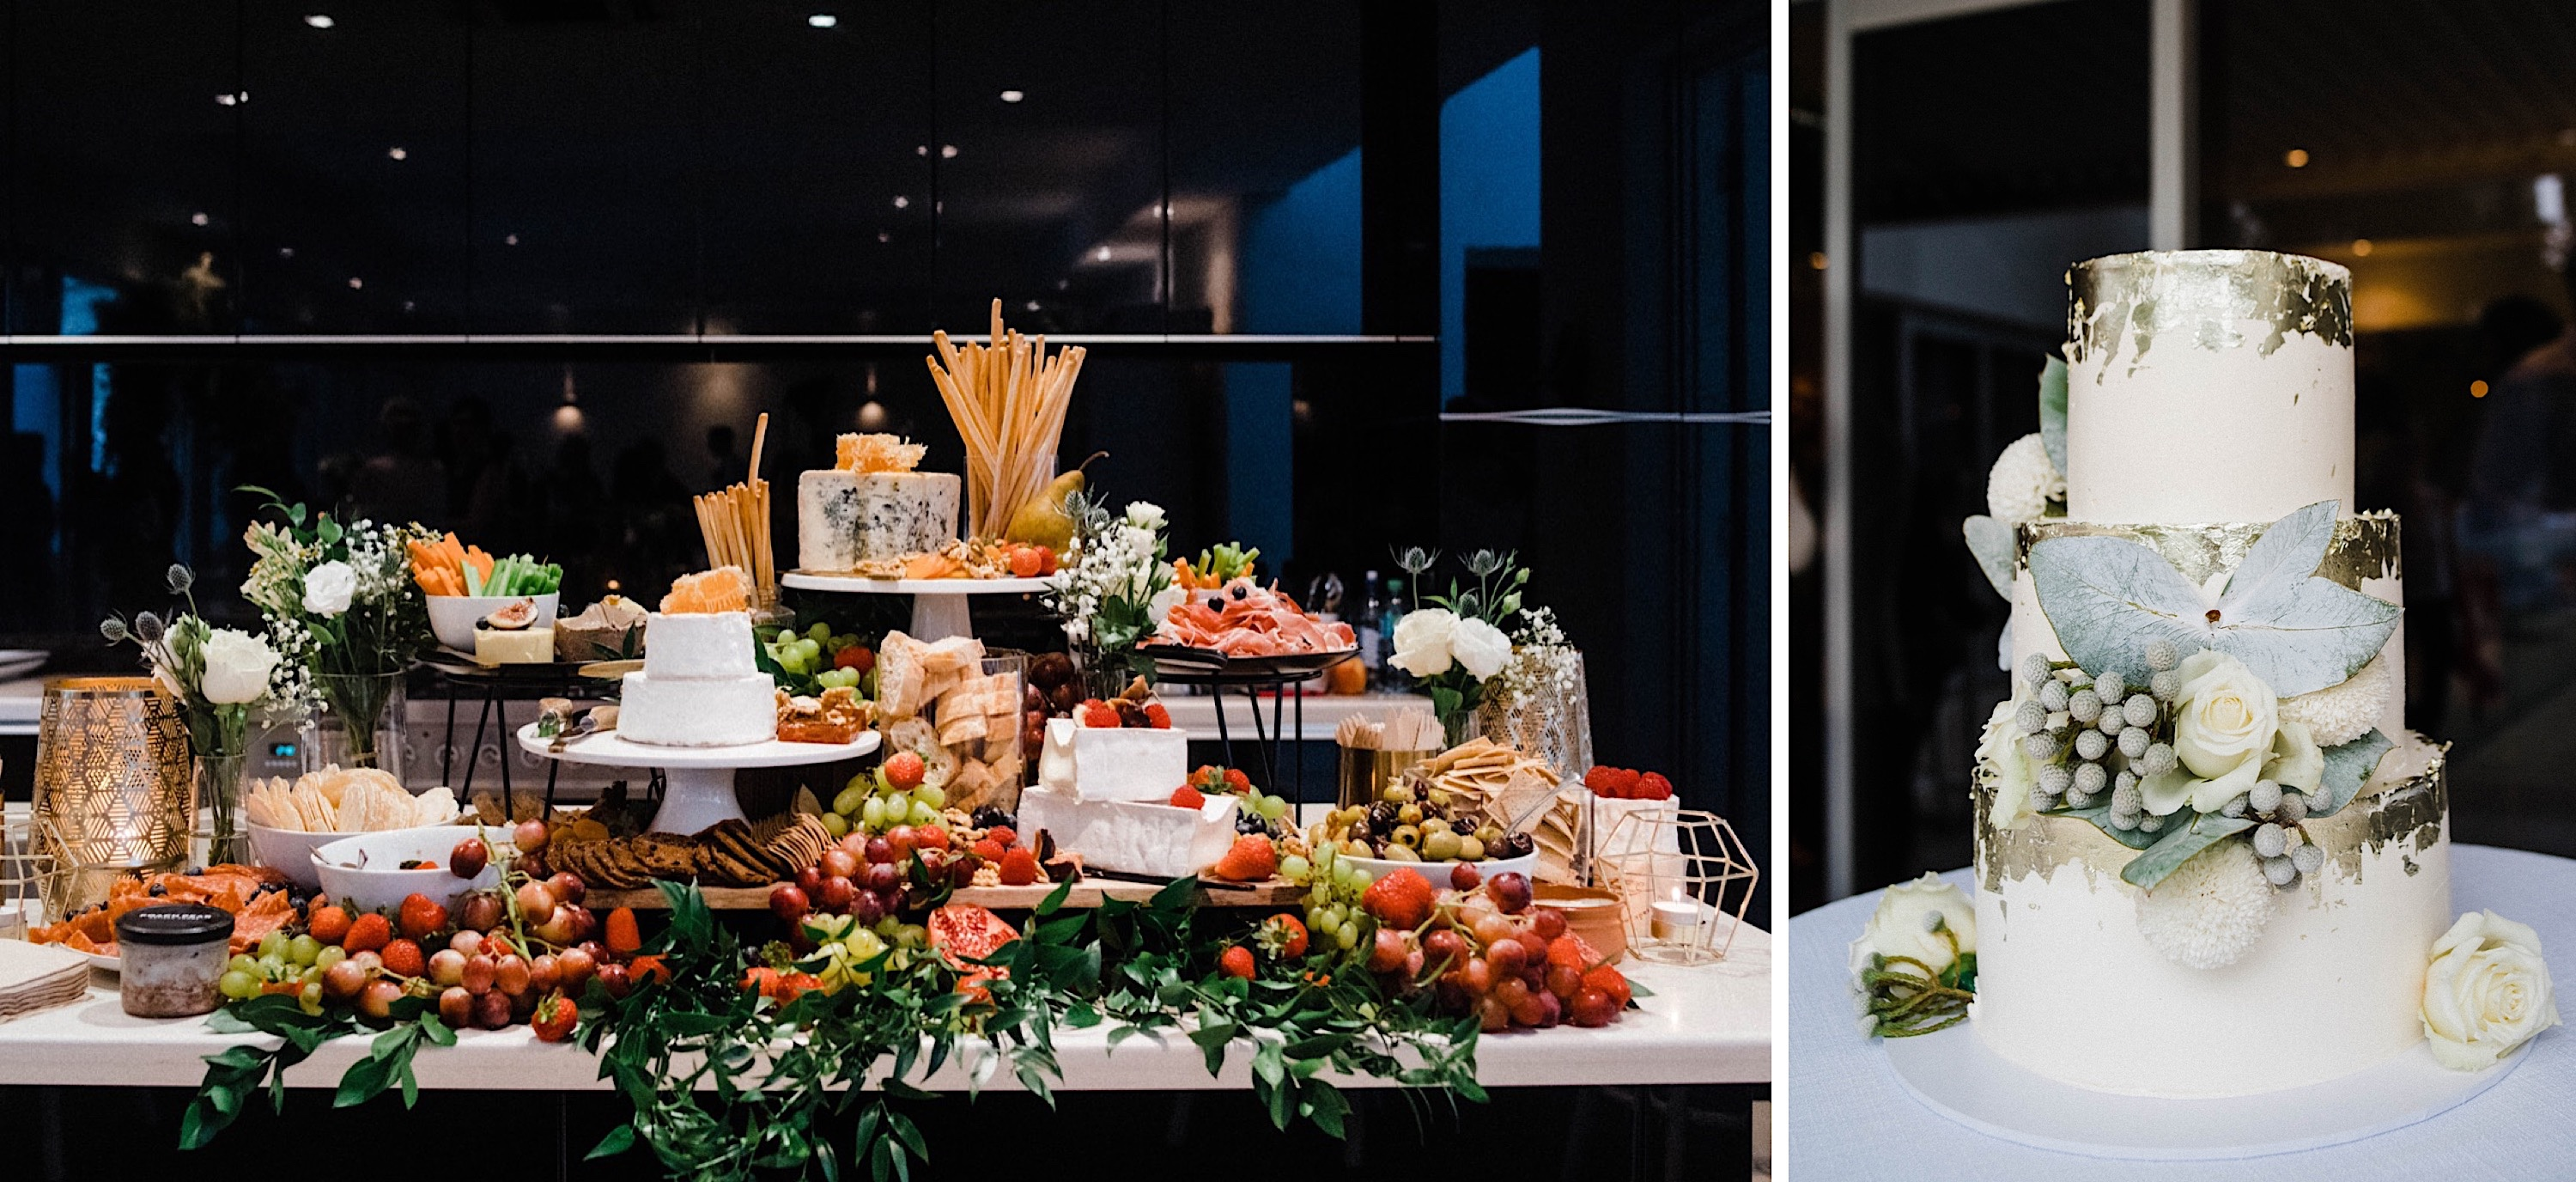 Two styled photos from Becky & Cal's Sustainable Backyard Wedding. On the left is a grazing table with no plastic, and on the right a gold leaf, three-tier cake.